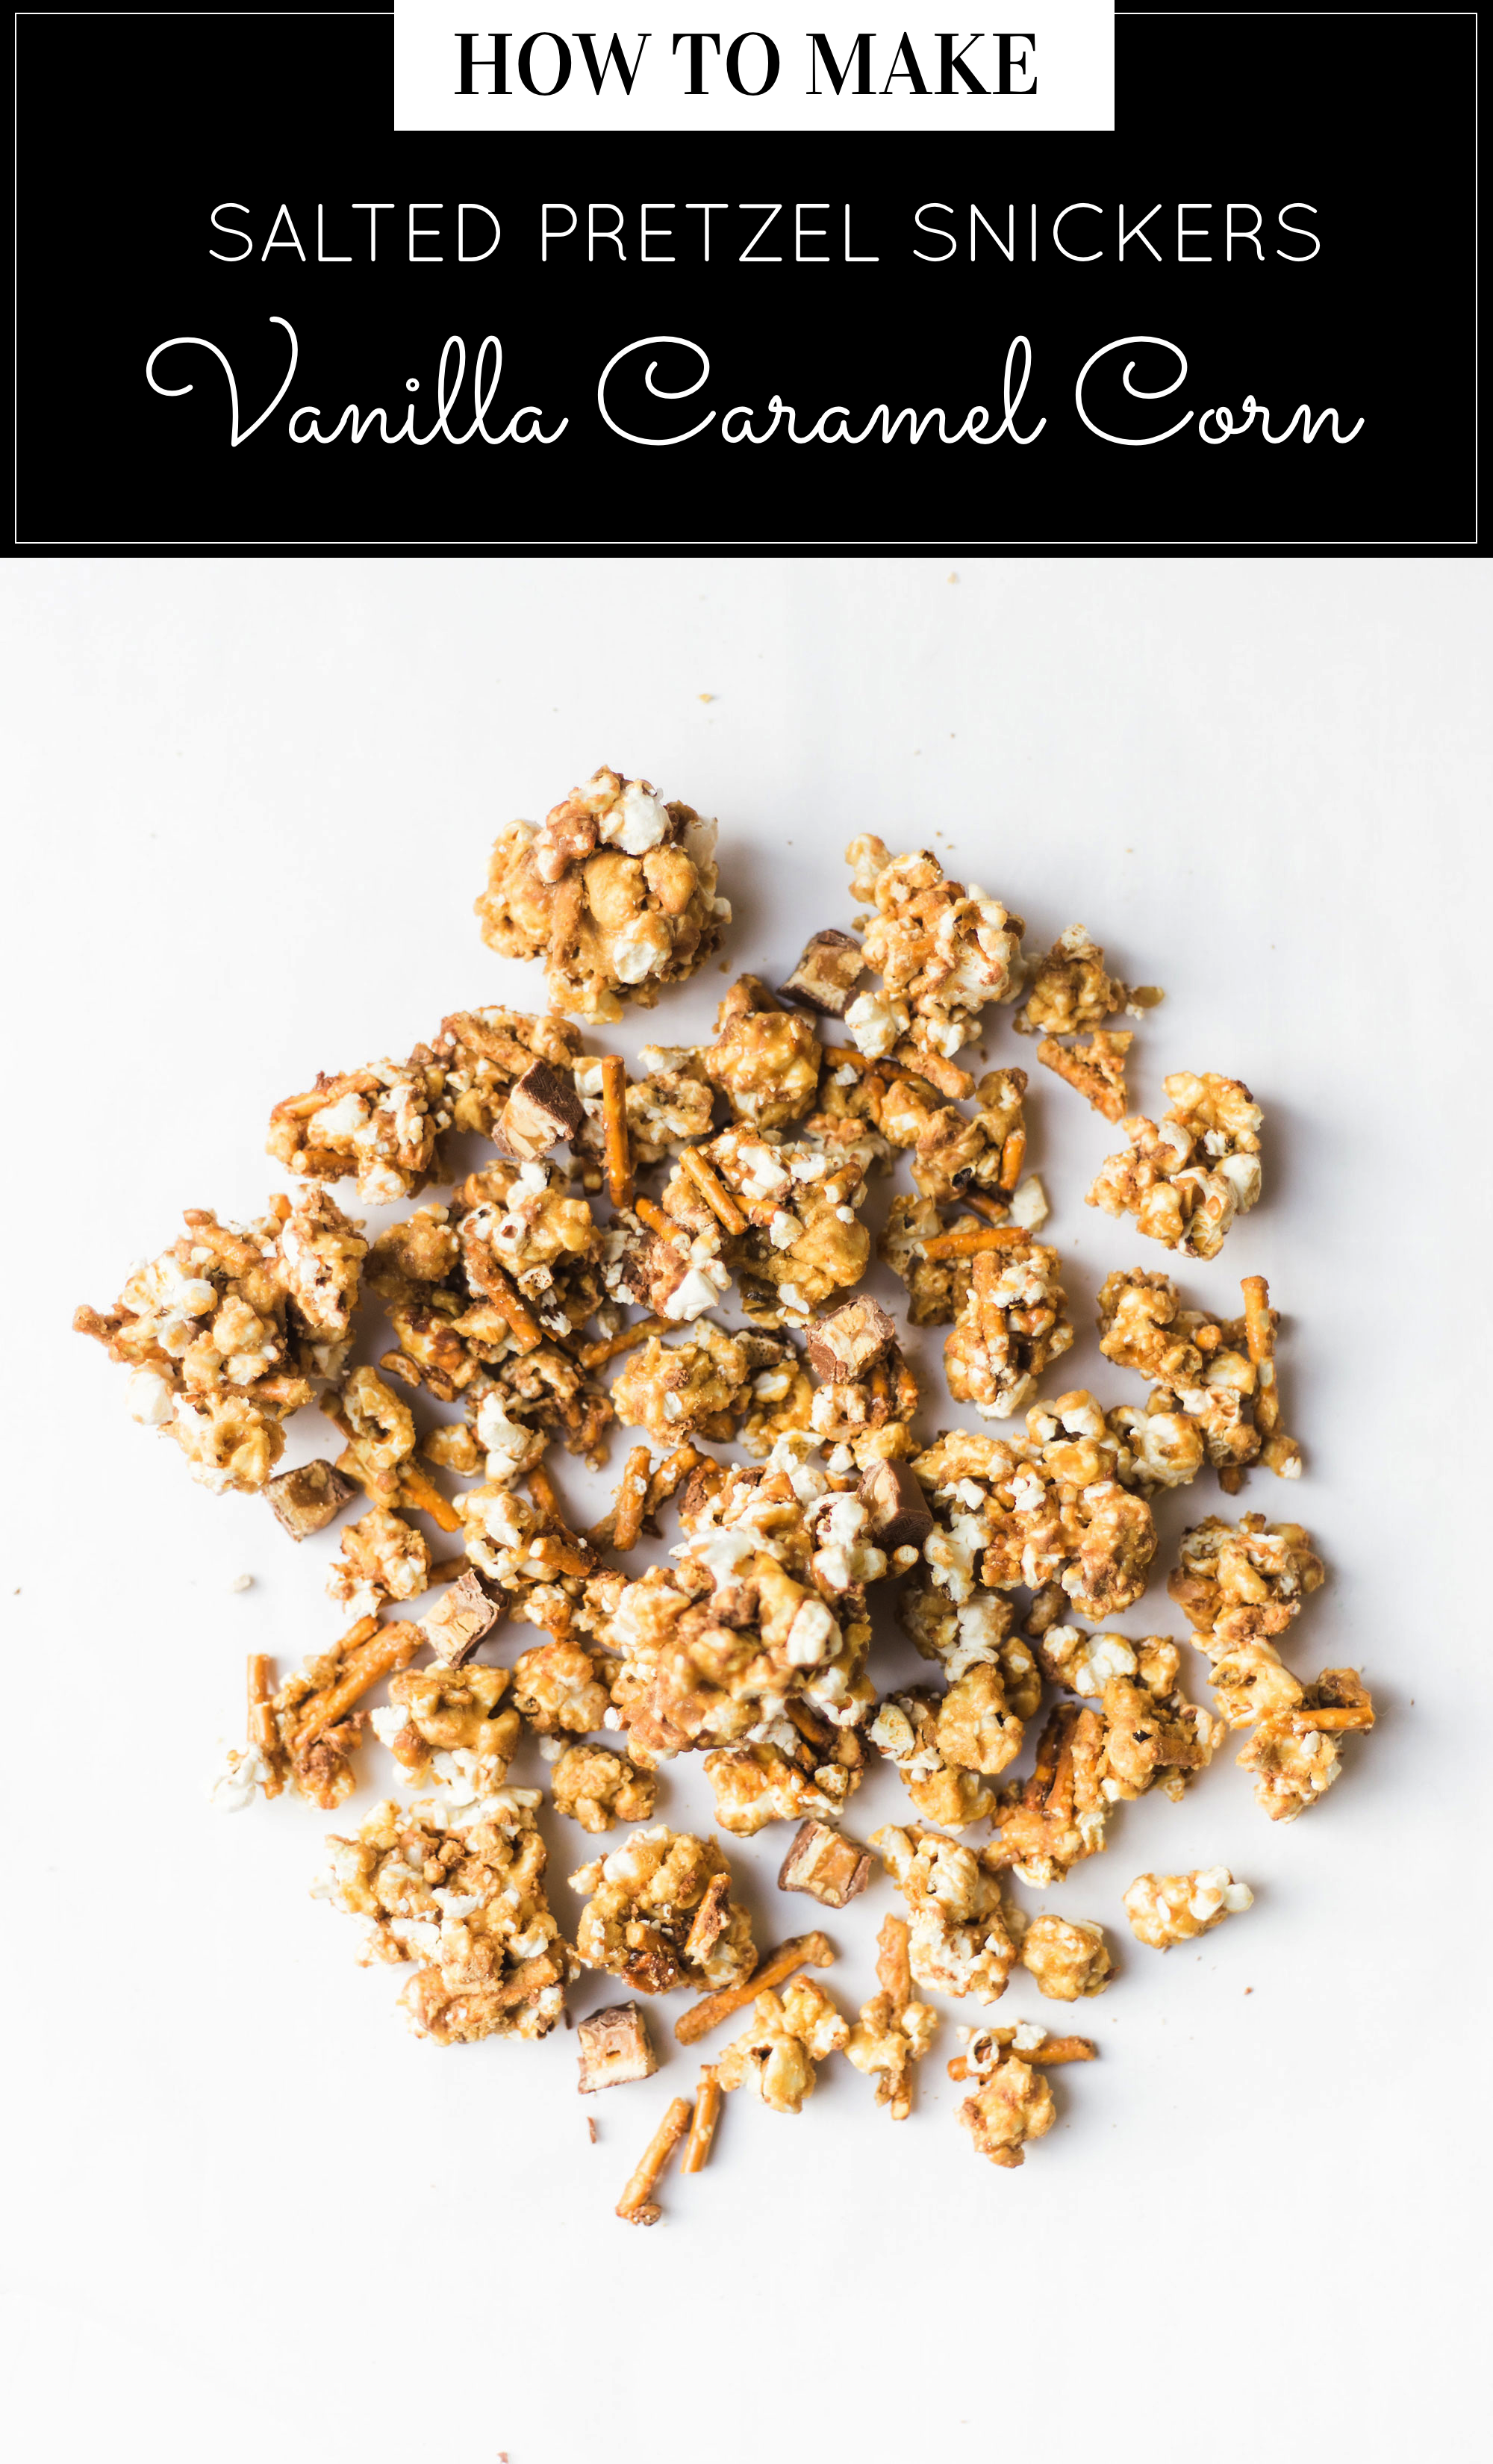 How to make your new favorite game day salted pretzel Snickers vanilla caramel corn. This sweet and salty mixture is just TOO GOOD. Click through for the recipe. | glitterinc.com | @glitterinc